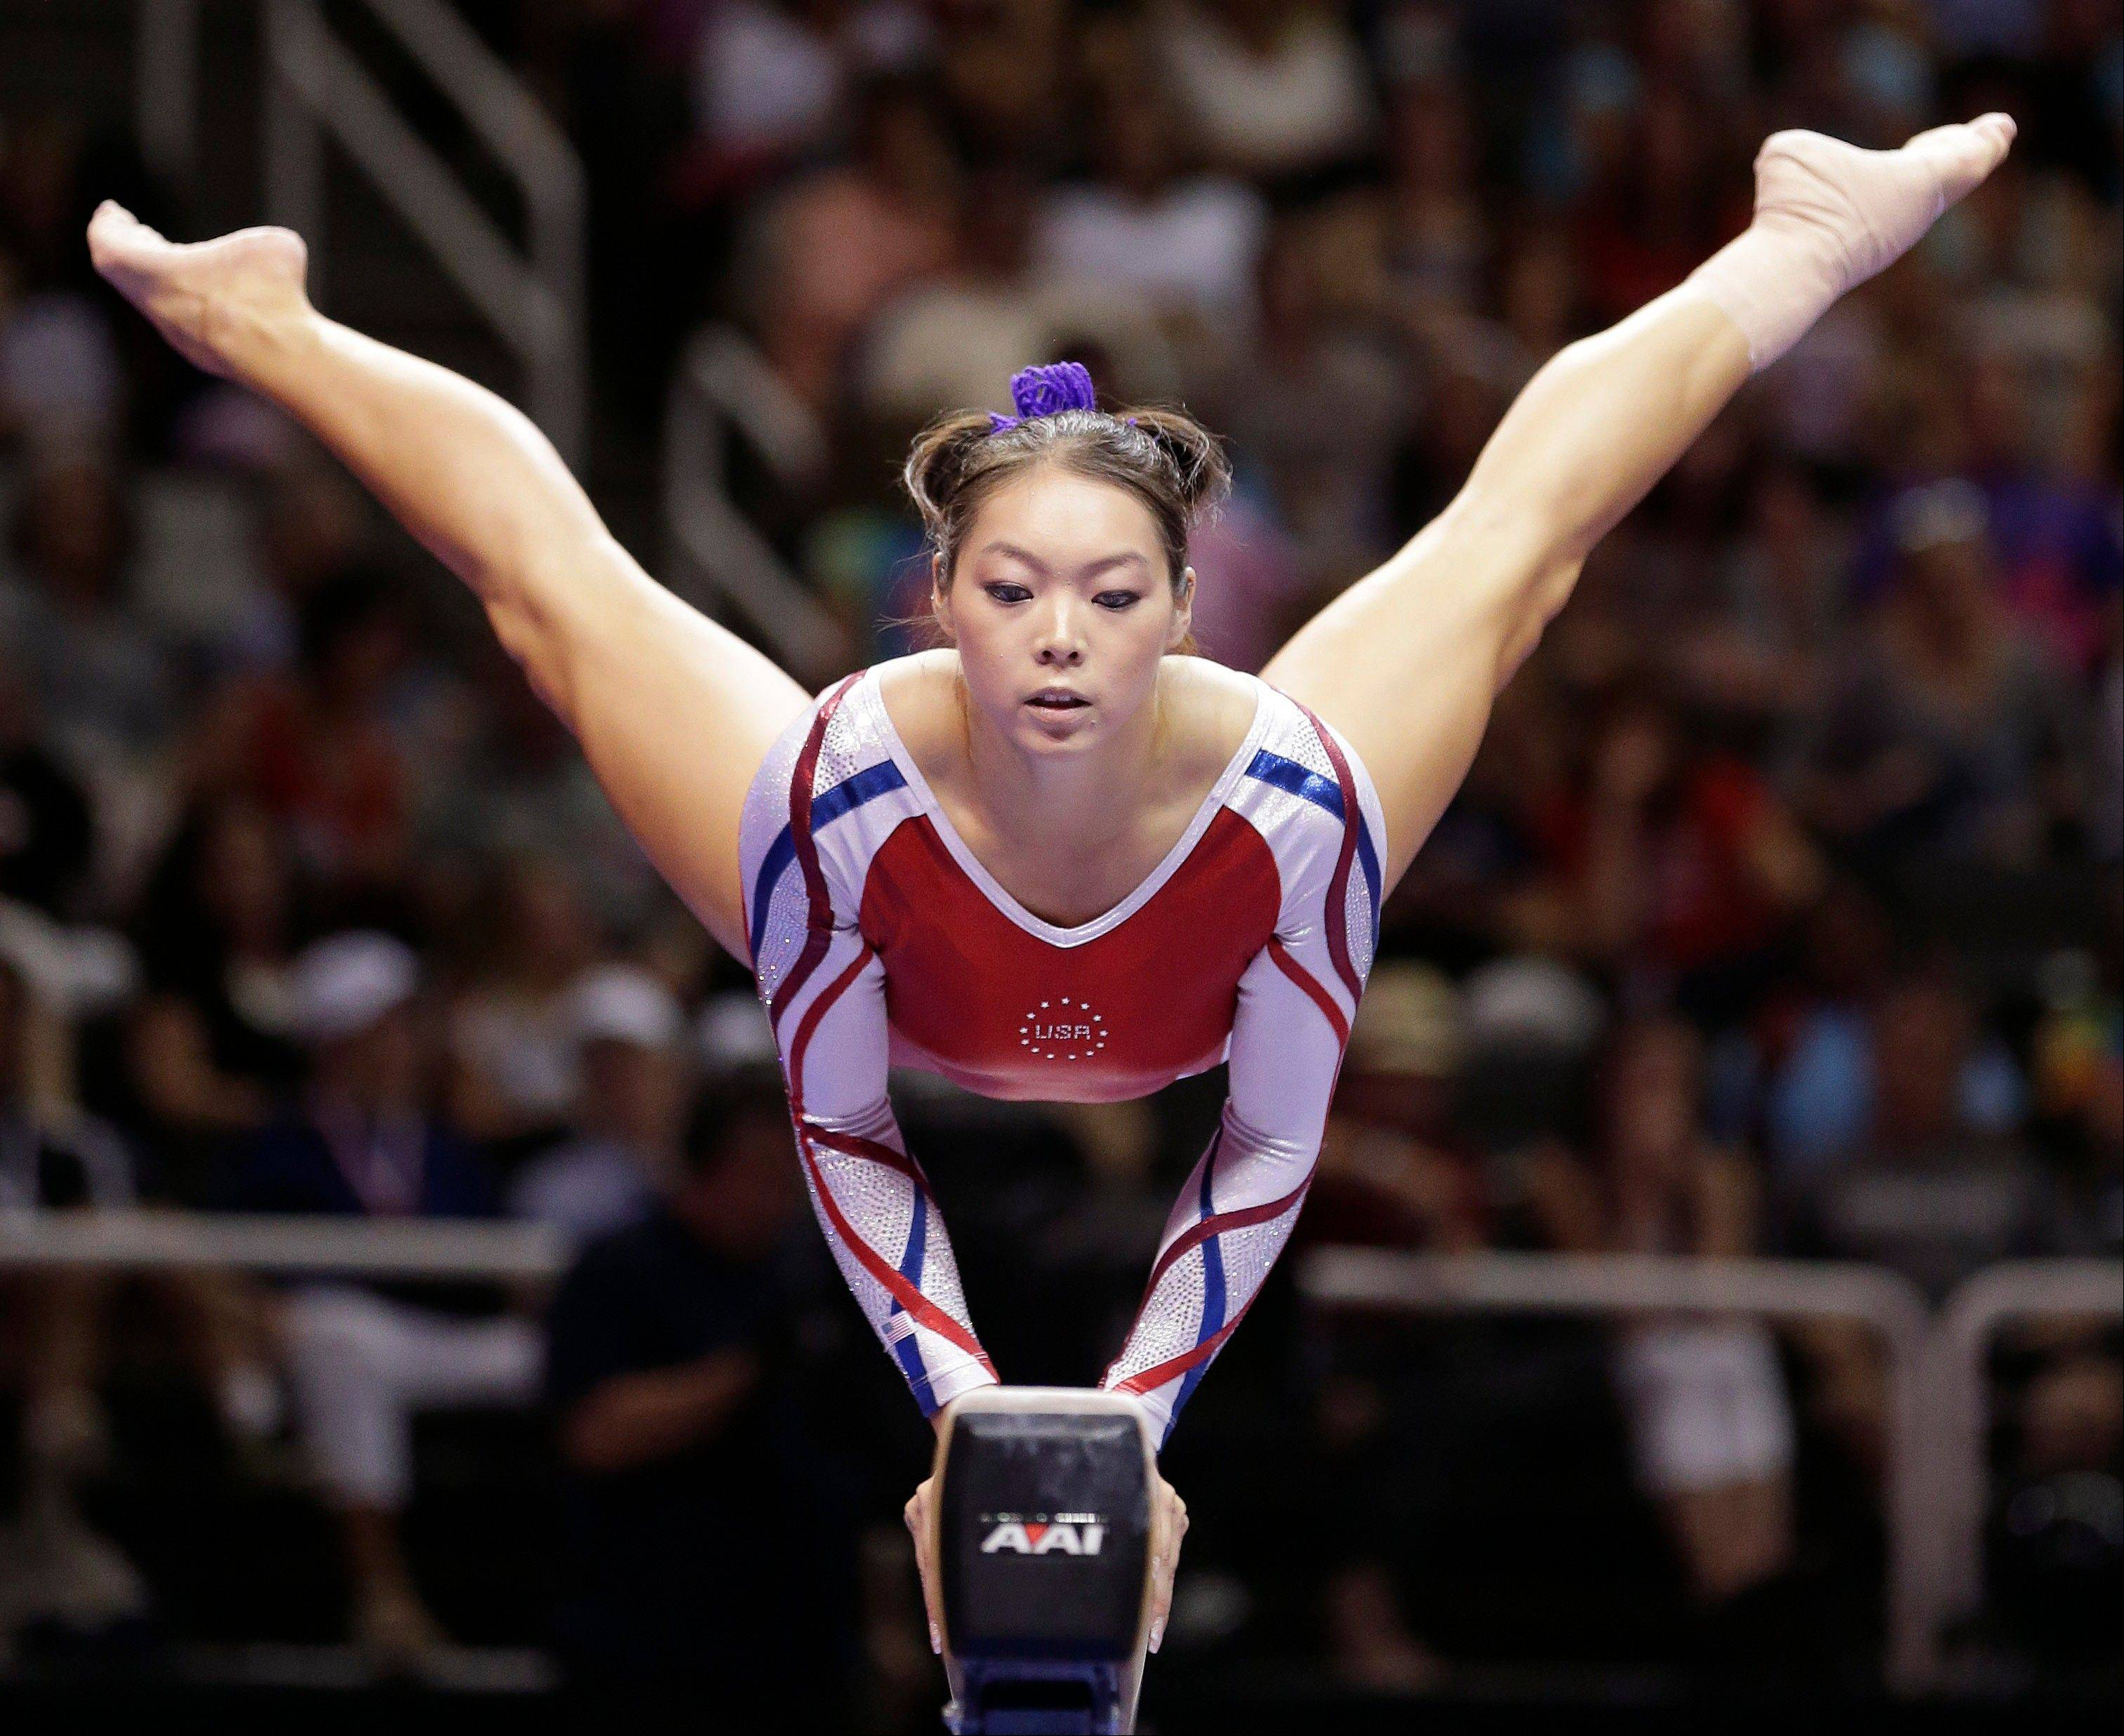 Aurora gymnast heading to Olympics as alternate